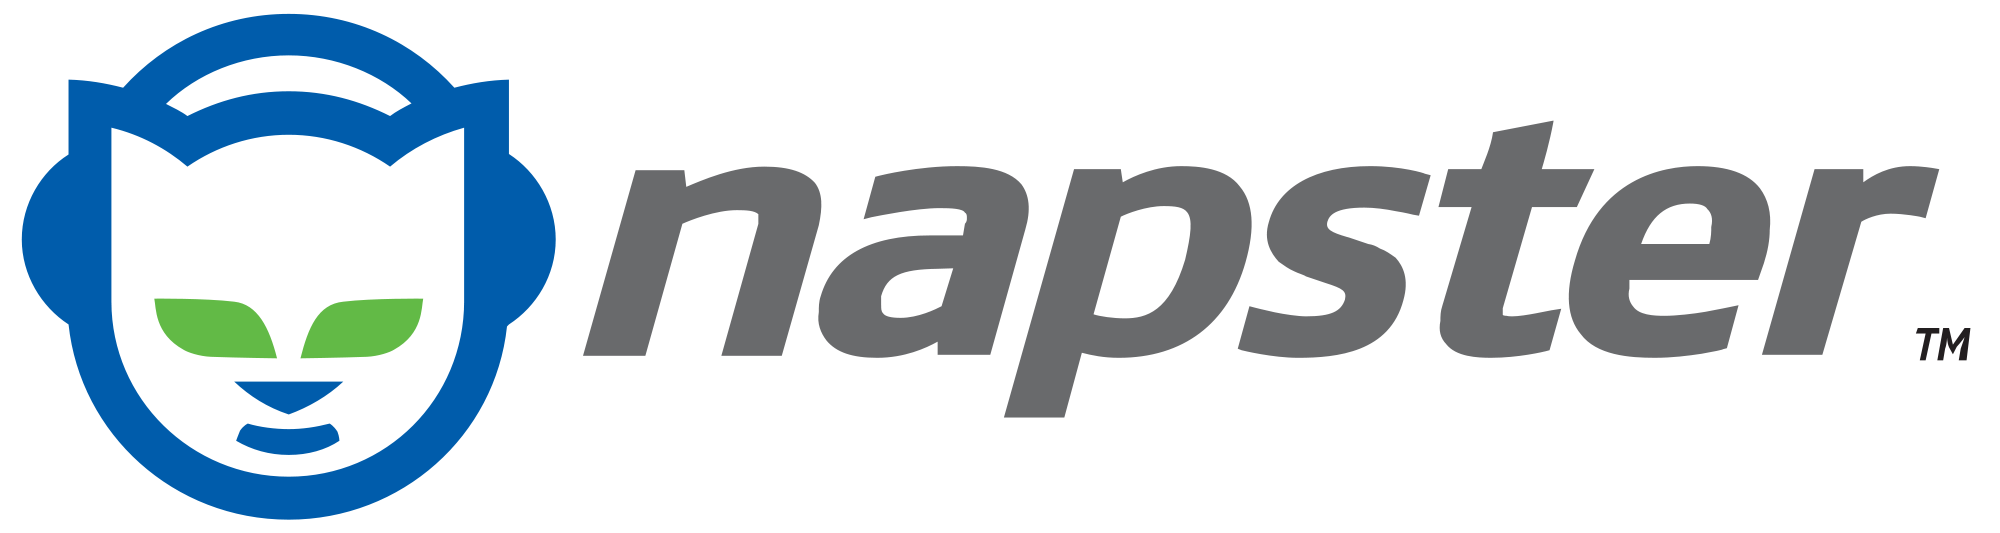 an analysis of napster software in 1999 With the help of his uncle and friends, napster was founded in 1999 as a peer-to-peer music file sharing service by 18-year-old shawn fanning napster did not store the music itself in its servers, but provided an index to files in other people's computers.